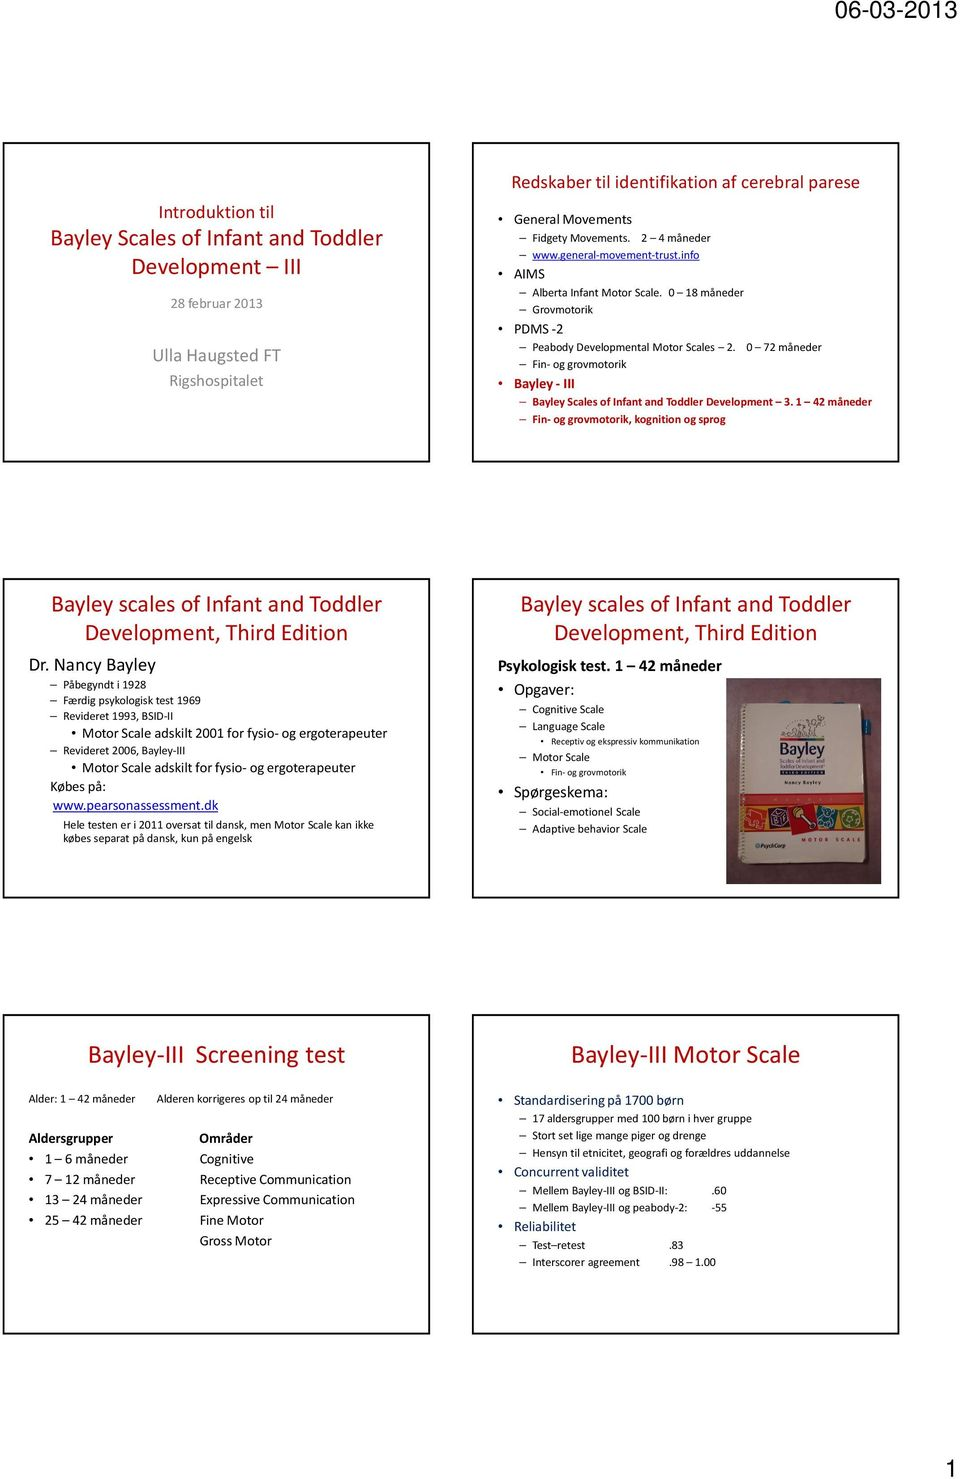 bayley scales of infant development manual